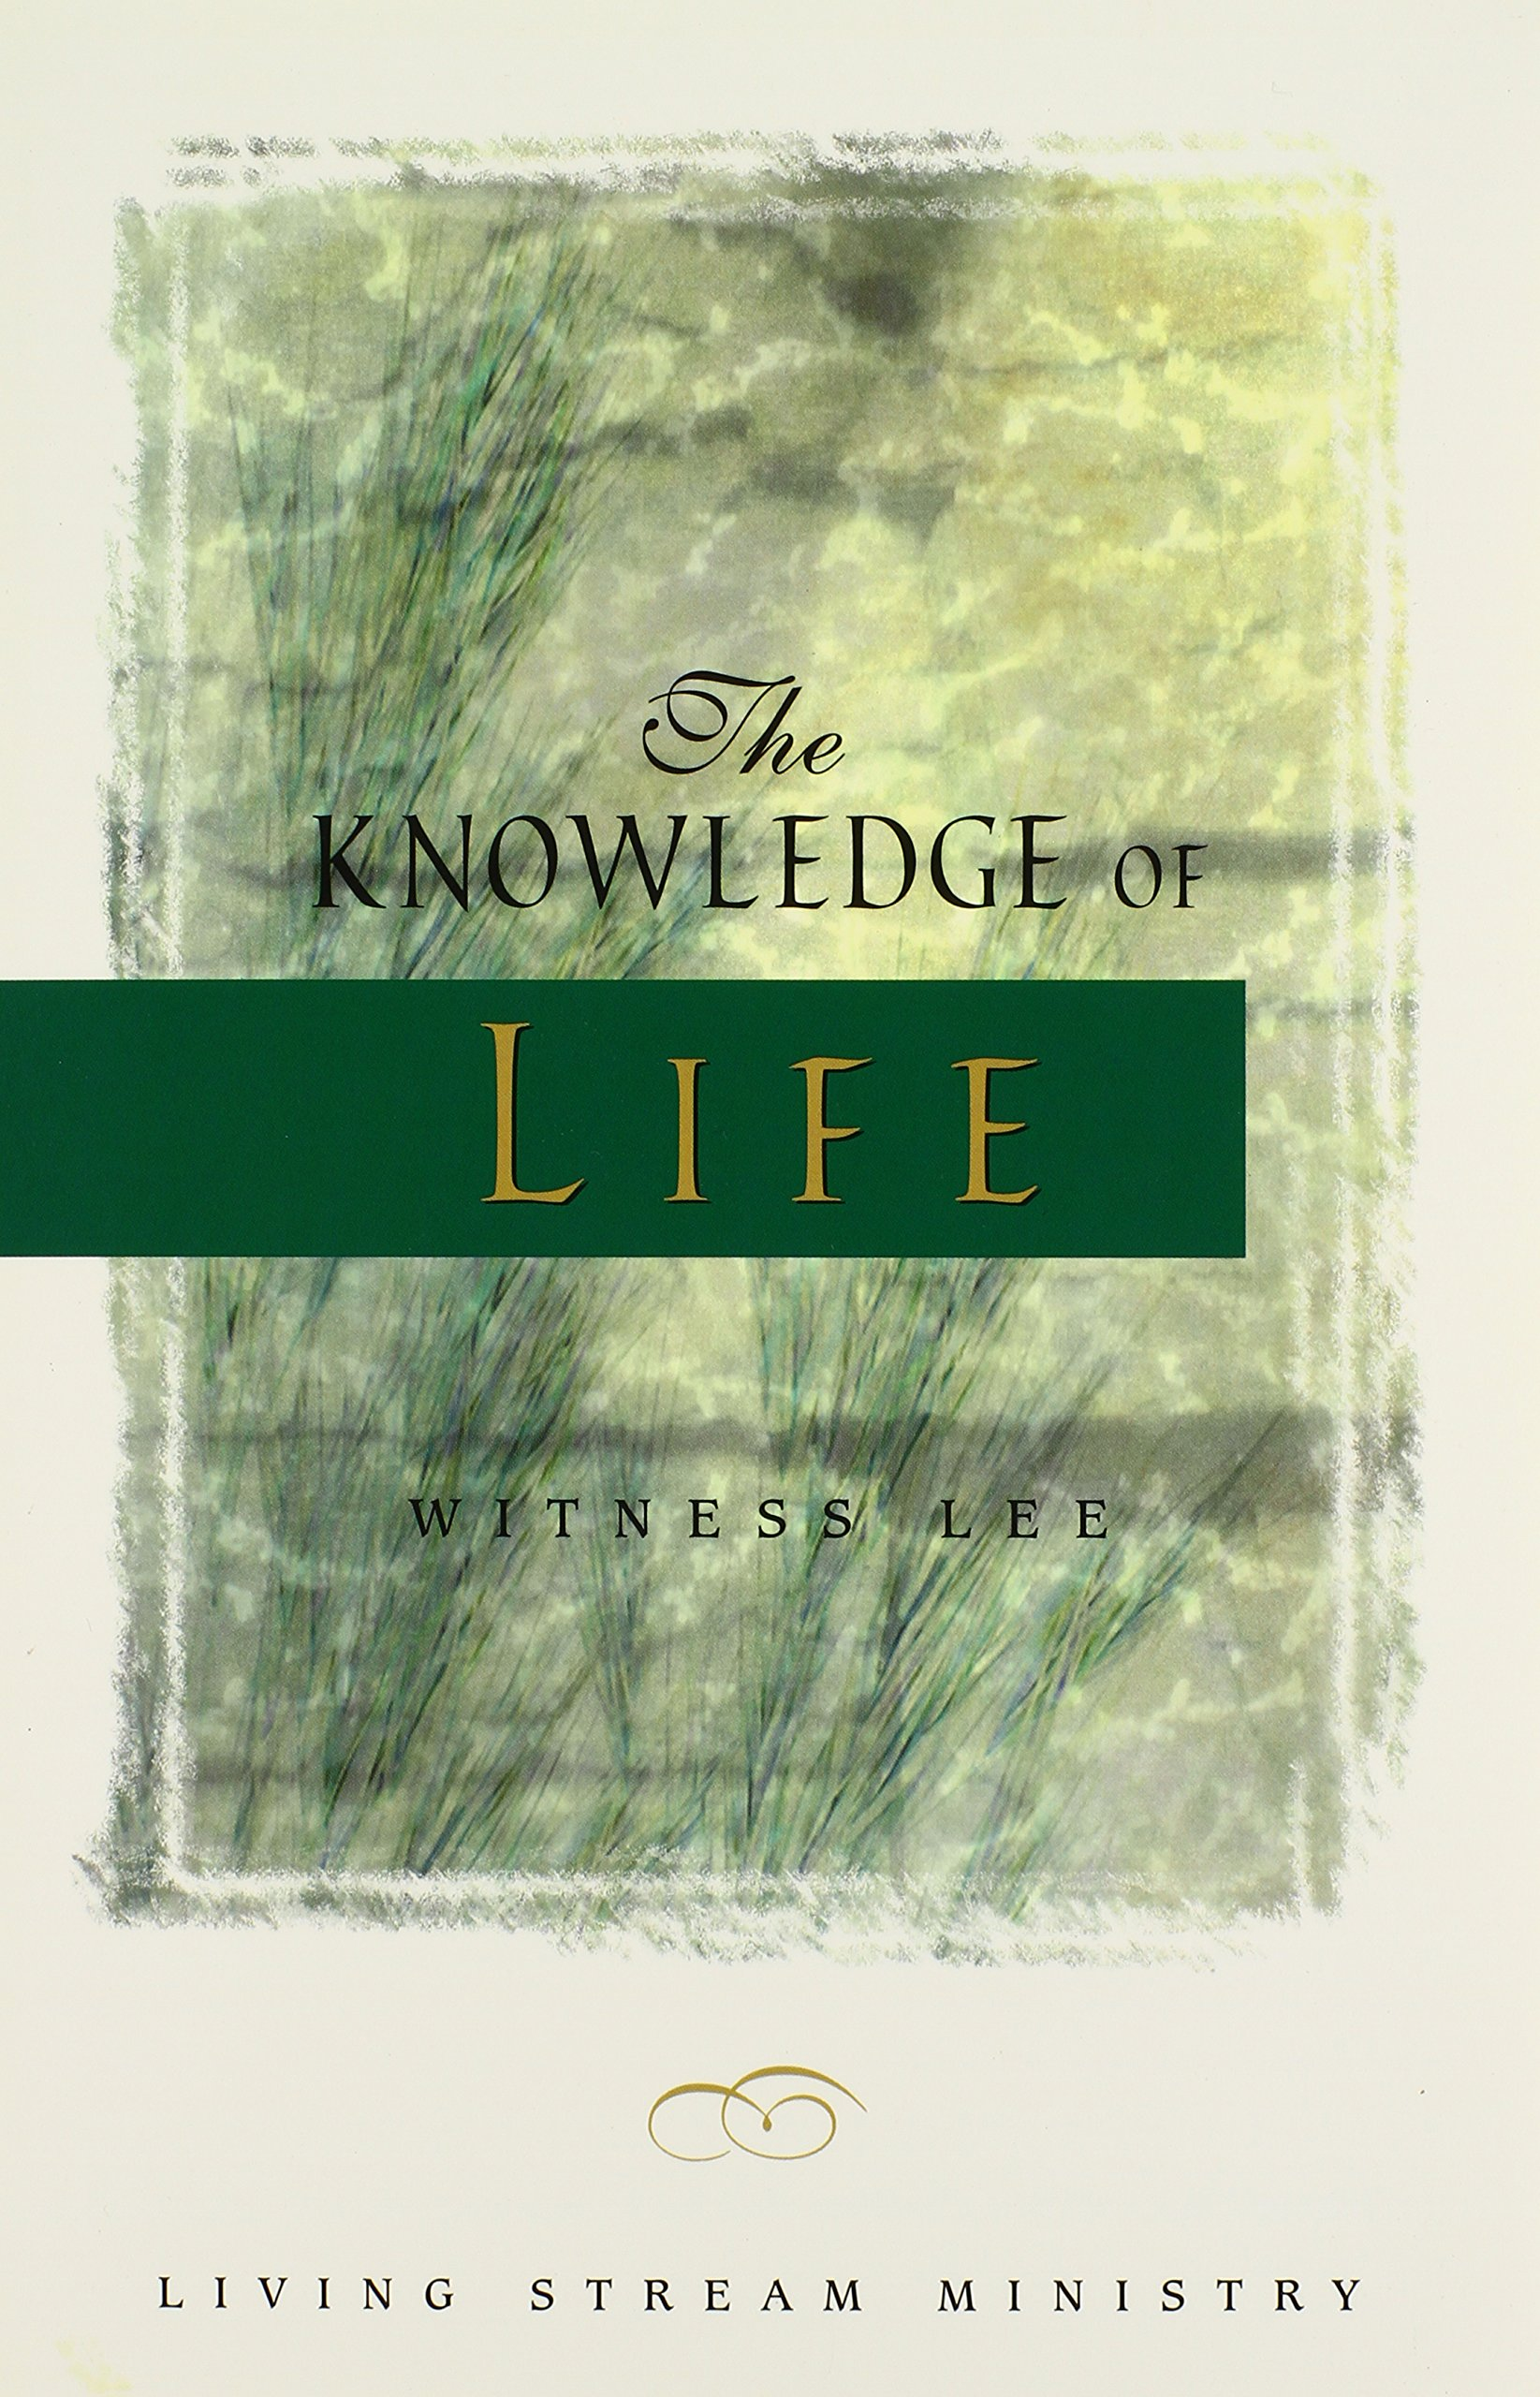 The Knowledge of Life